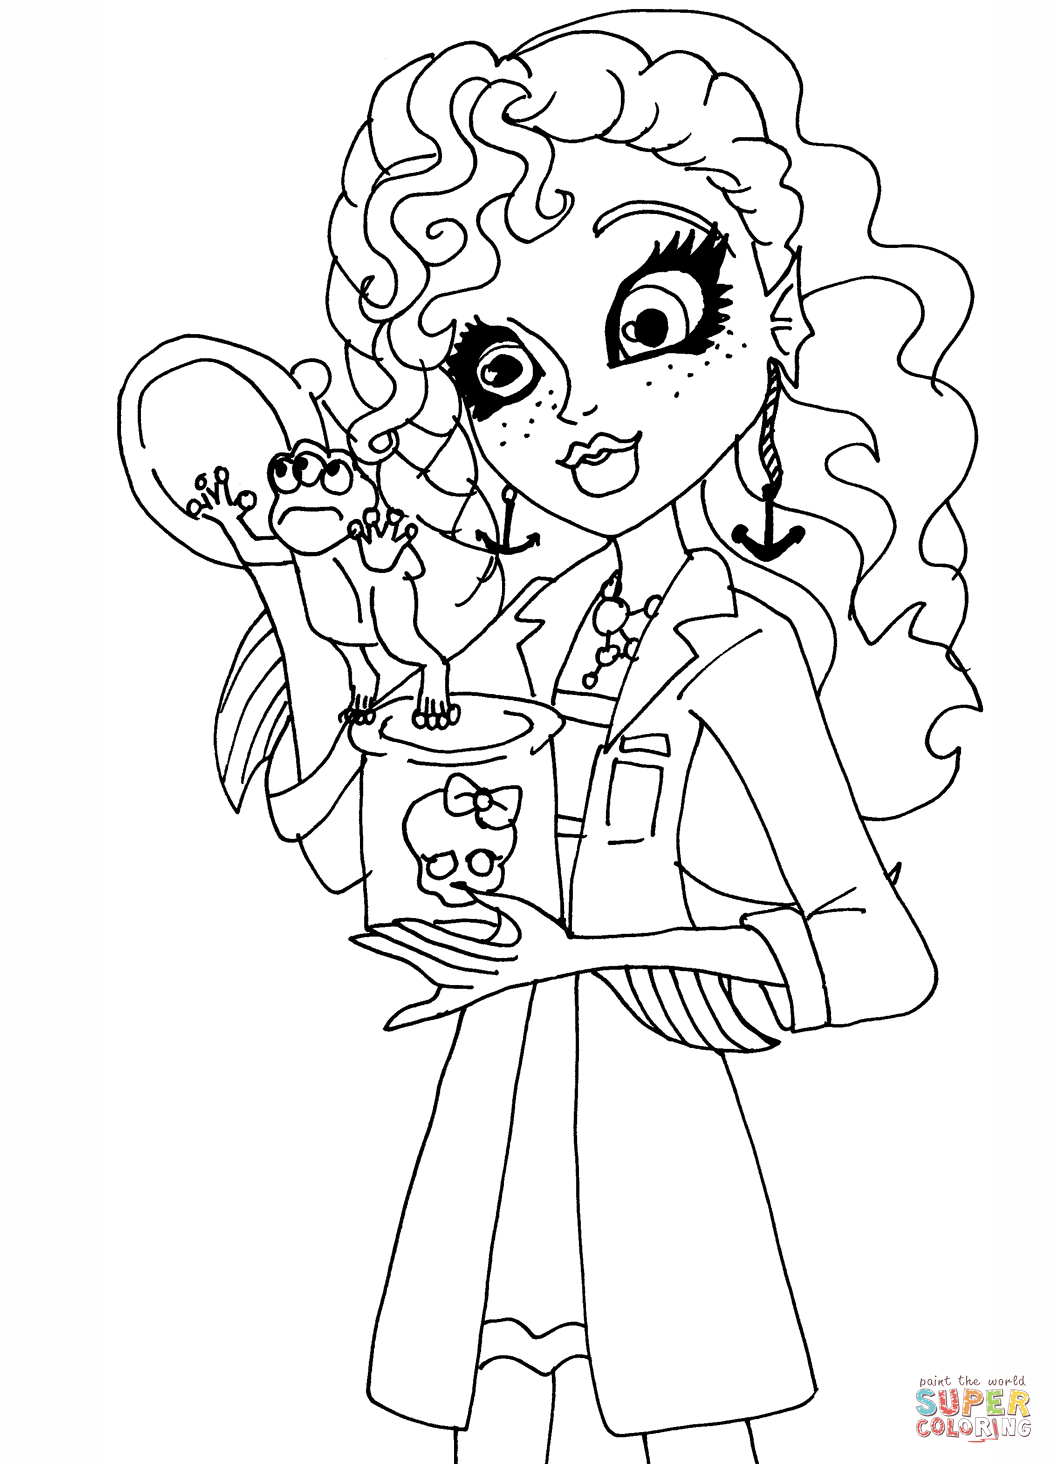 Dibujos Para Colorear Monster High Great Dibujos Para